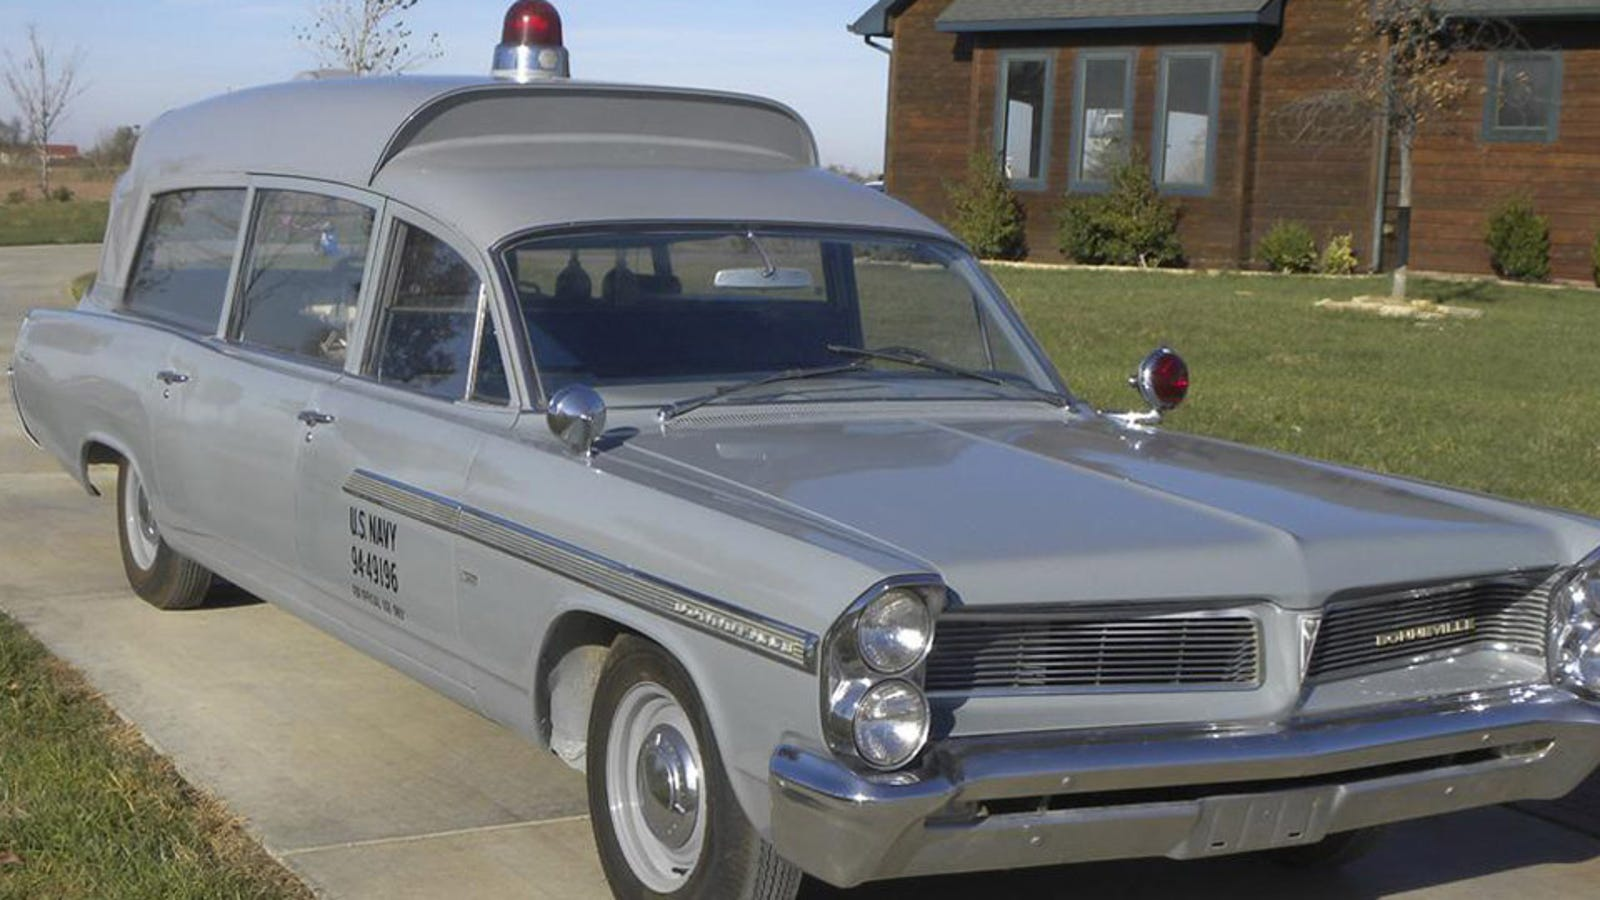 The JFK Ambulance Is A Fake